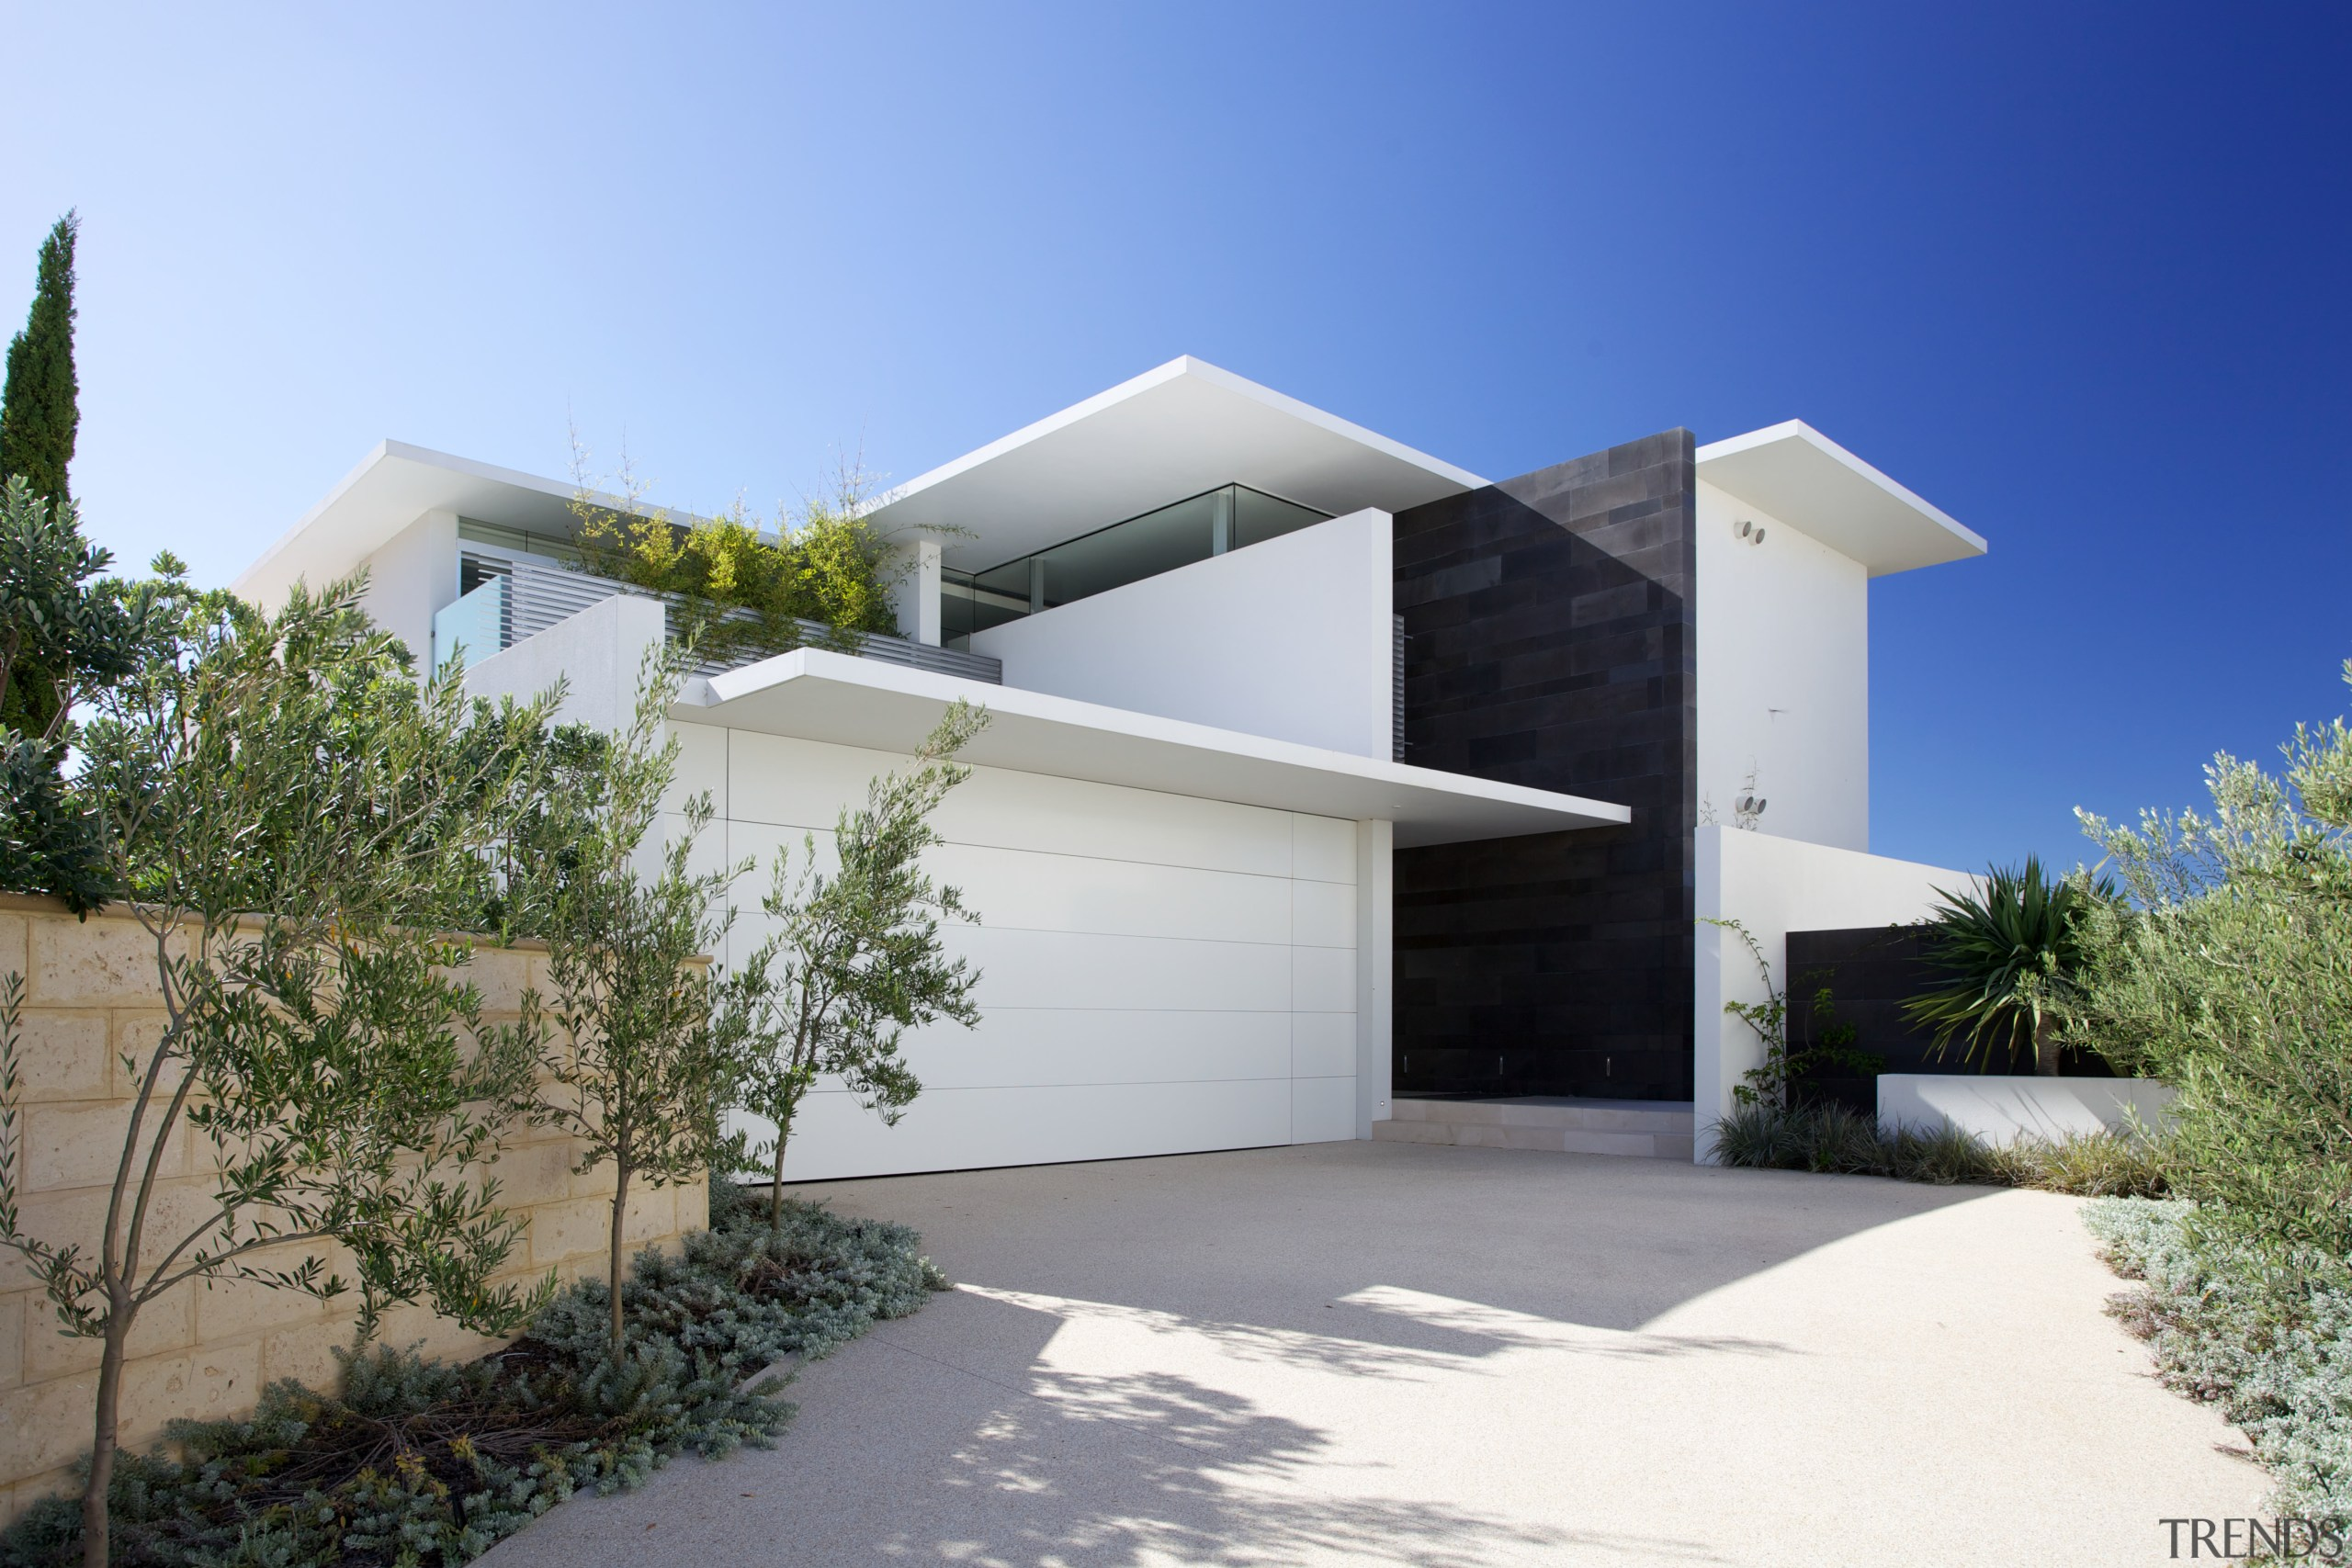 Architect Gary Banham has spent a lifetime designing architecture, building, elevation, estate, facade, home, house, property, real estate, residential area, blue